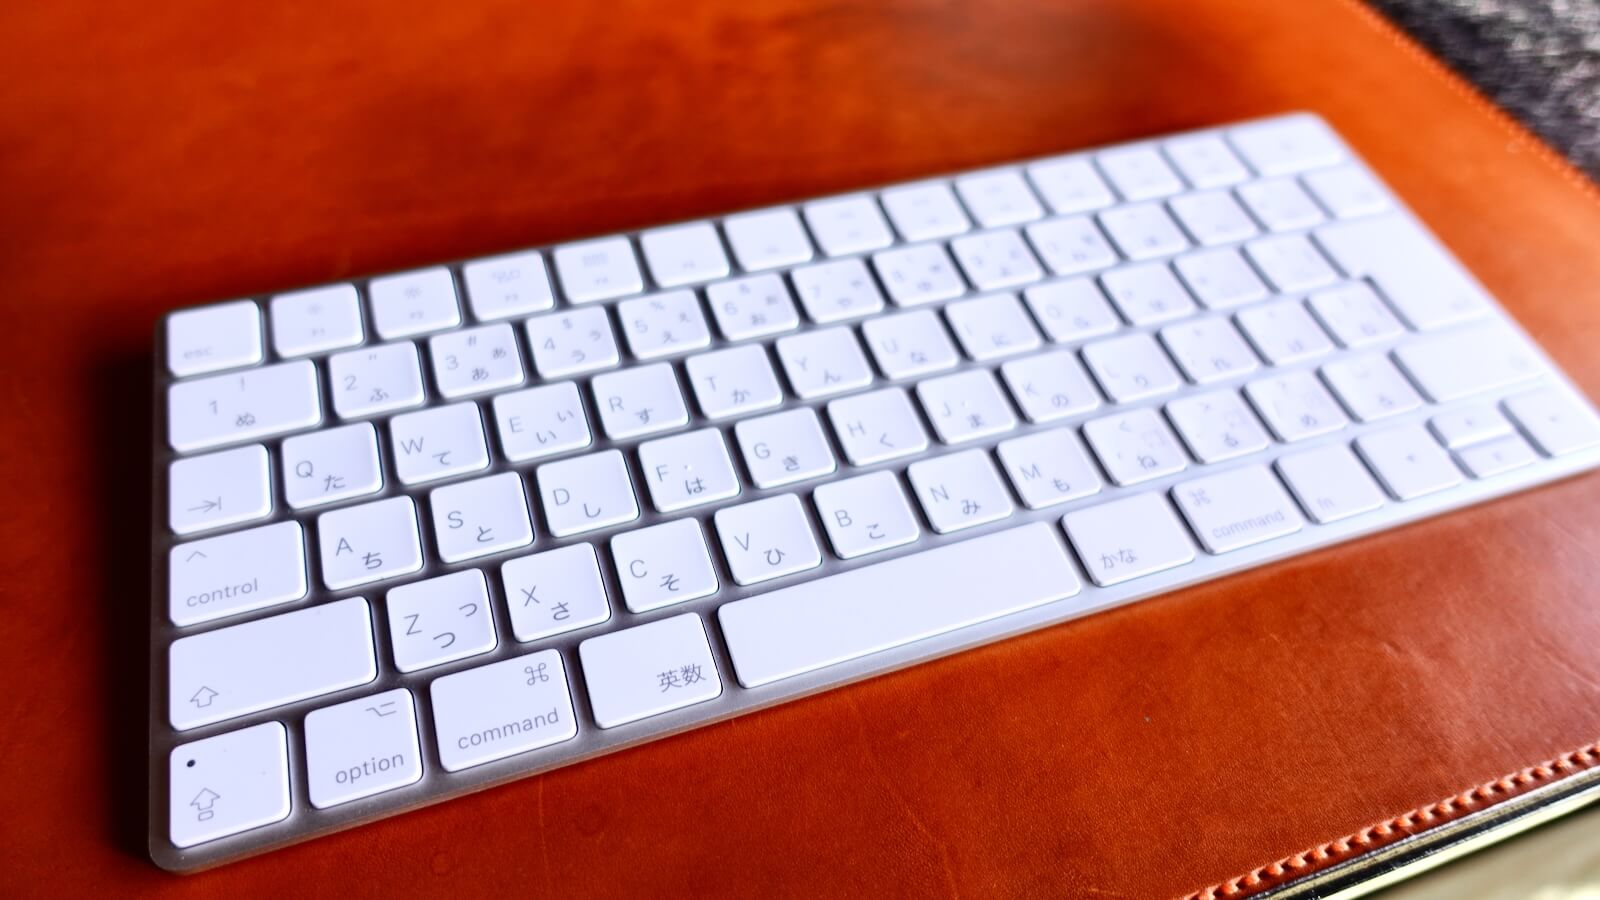 Apple Magic Keyboard Japanese input key